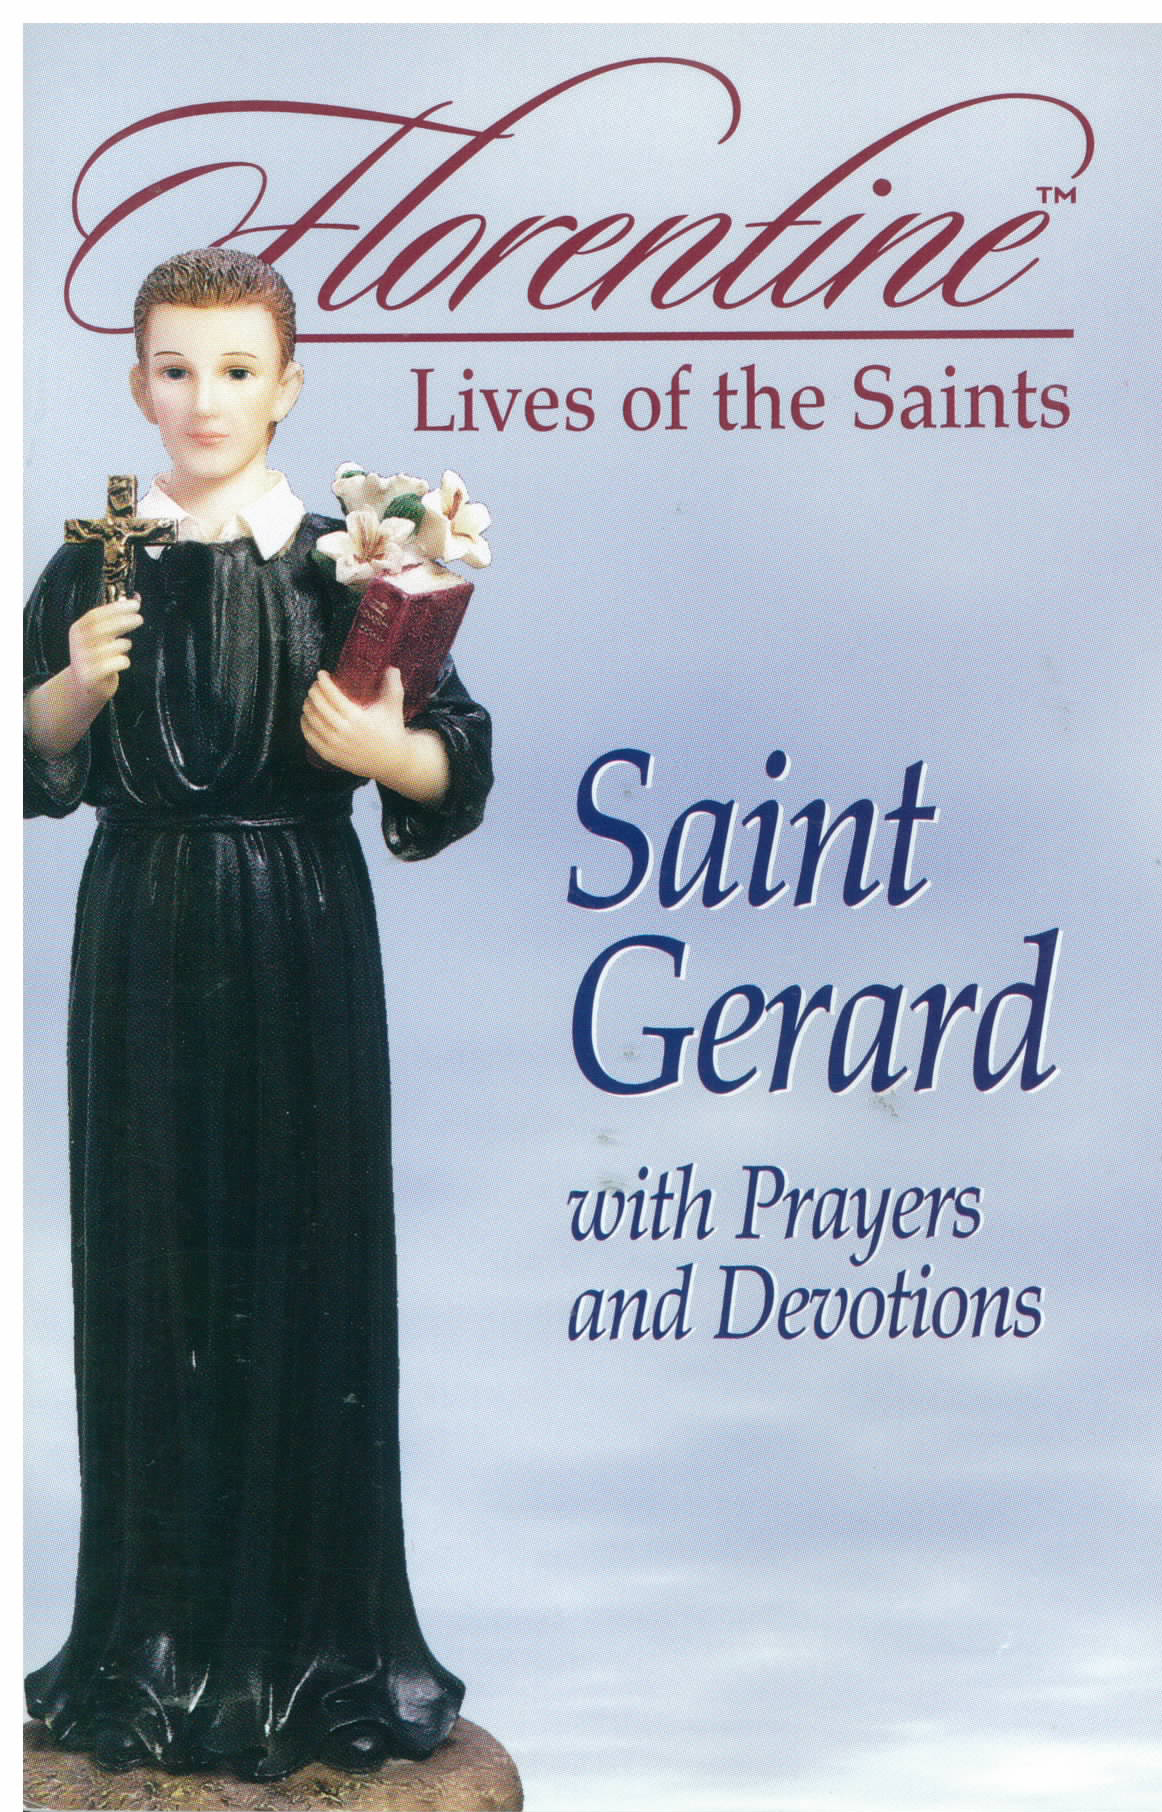 Florentine Lives of The Saints Saint Gerard by Mark Etling 306-11307